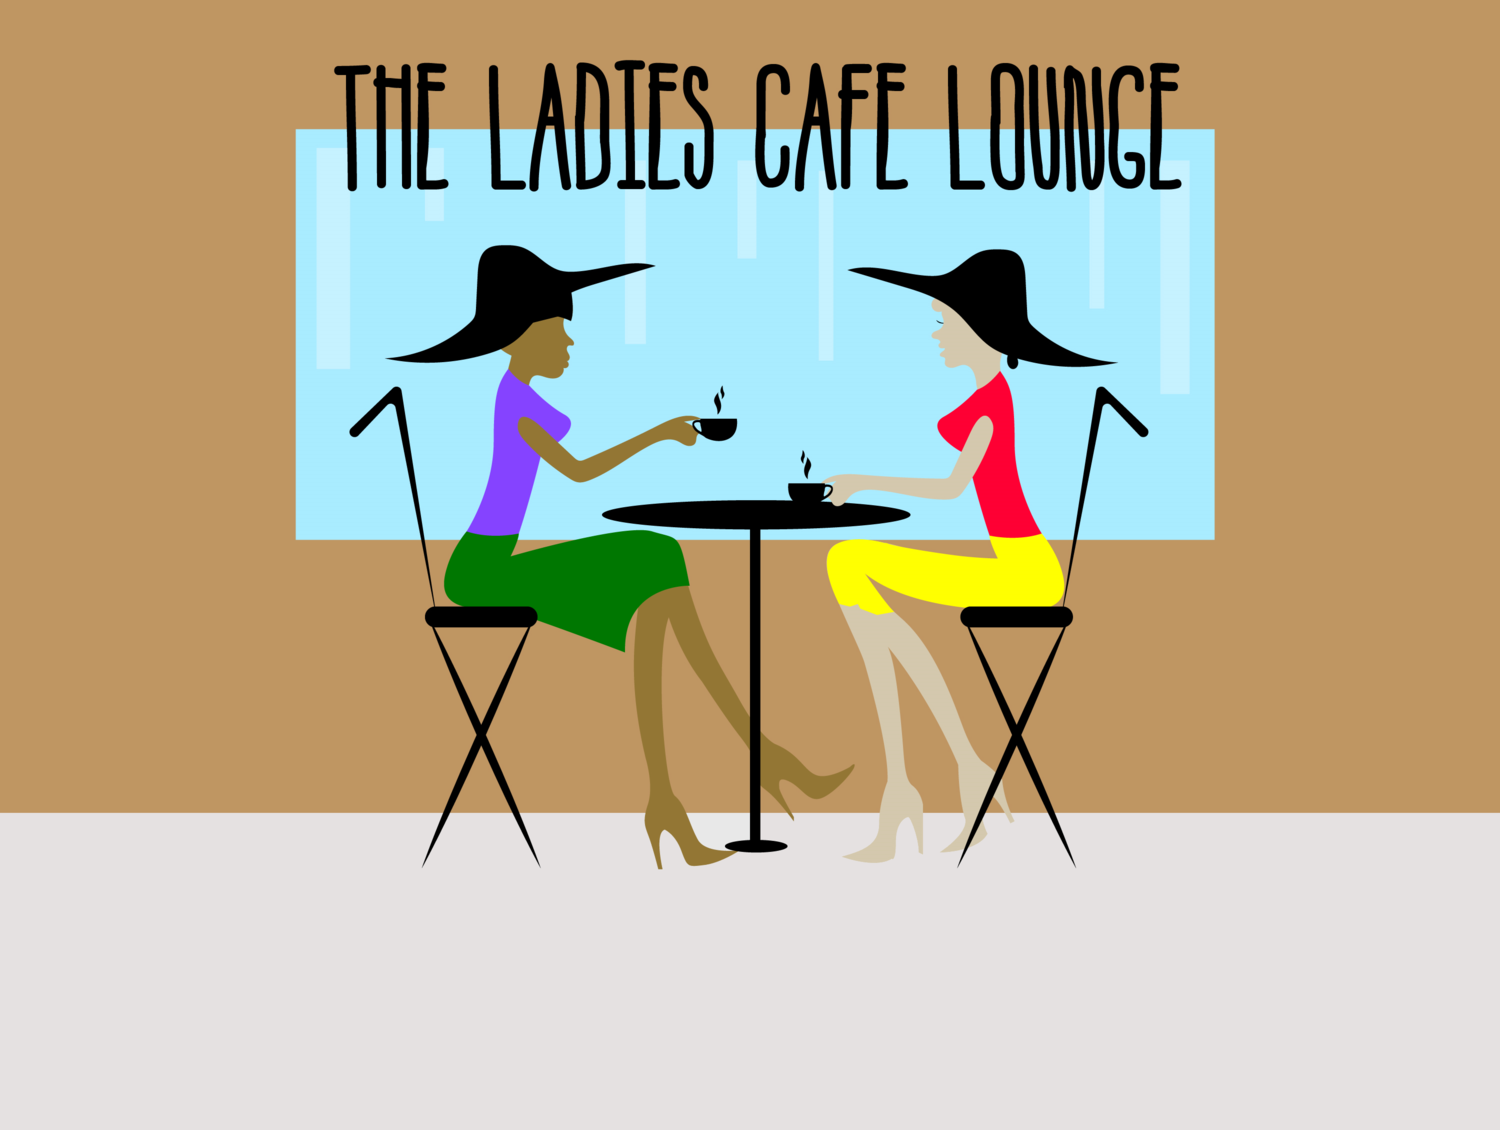 The Ladies Cafe Lounge